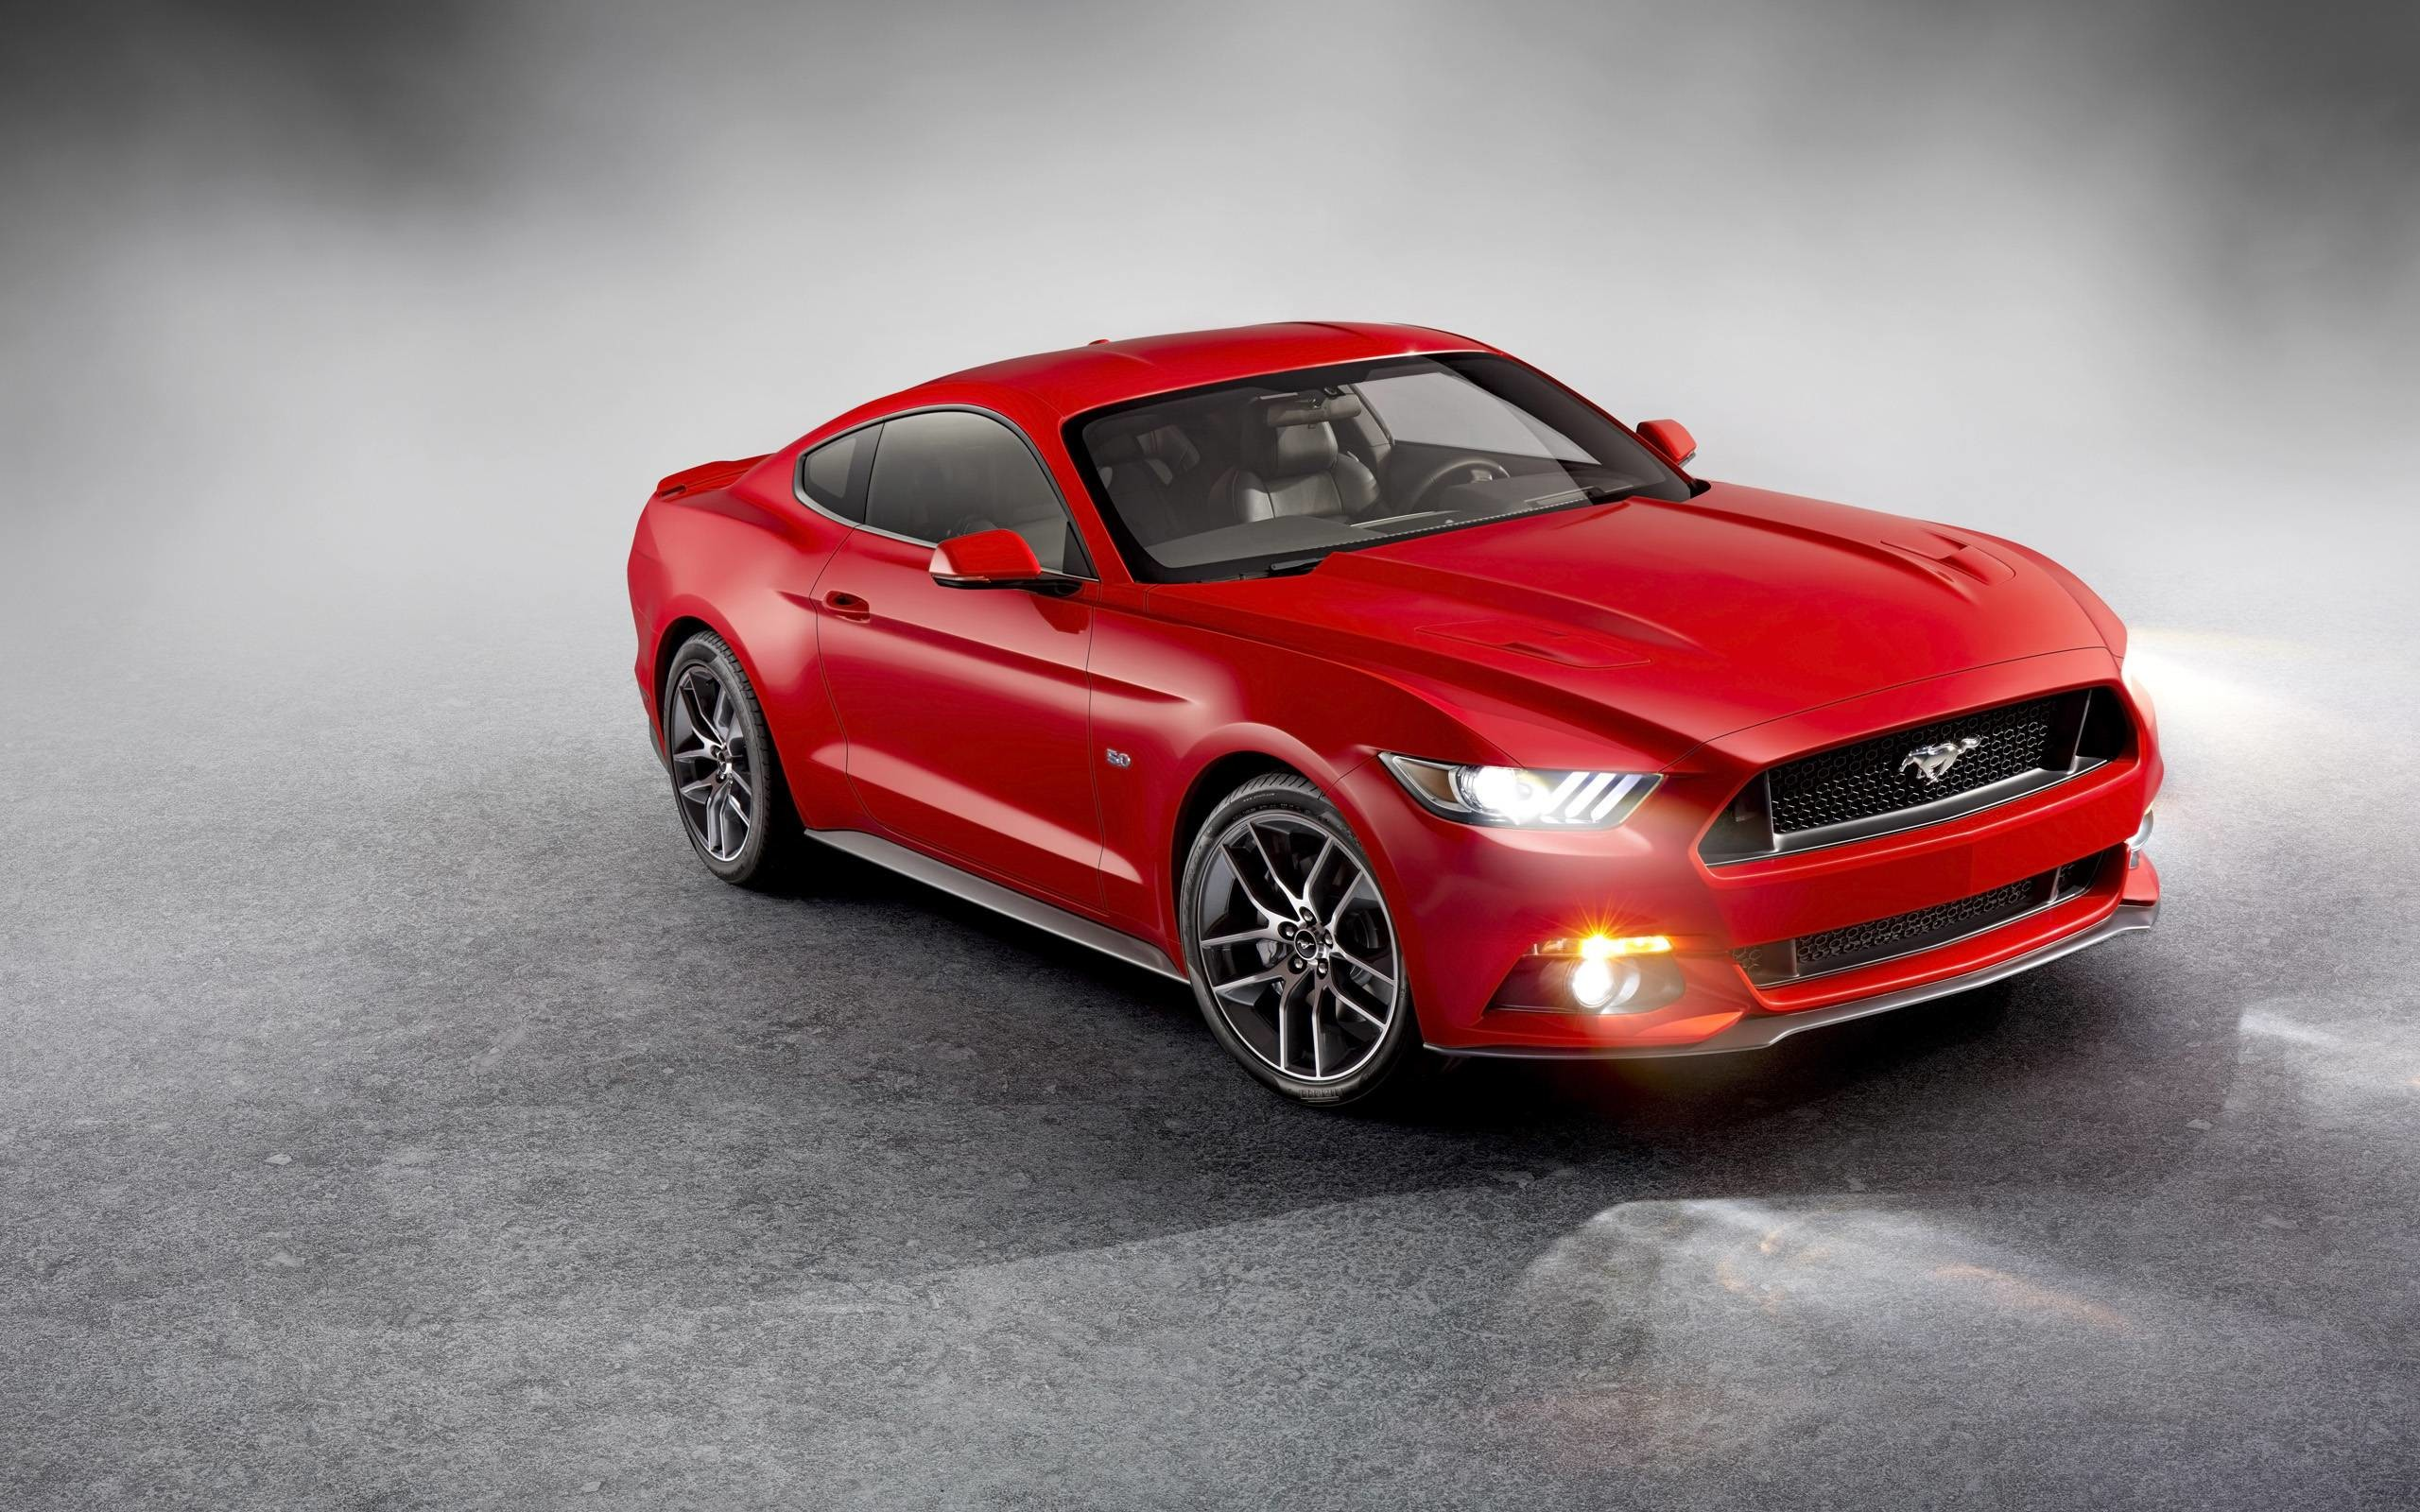 2015 Ford Mustang Front Wide Car Wallpapers HD Epic Wallpaper HD